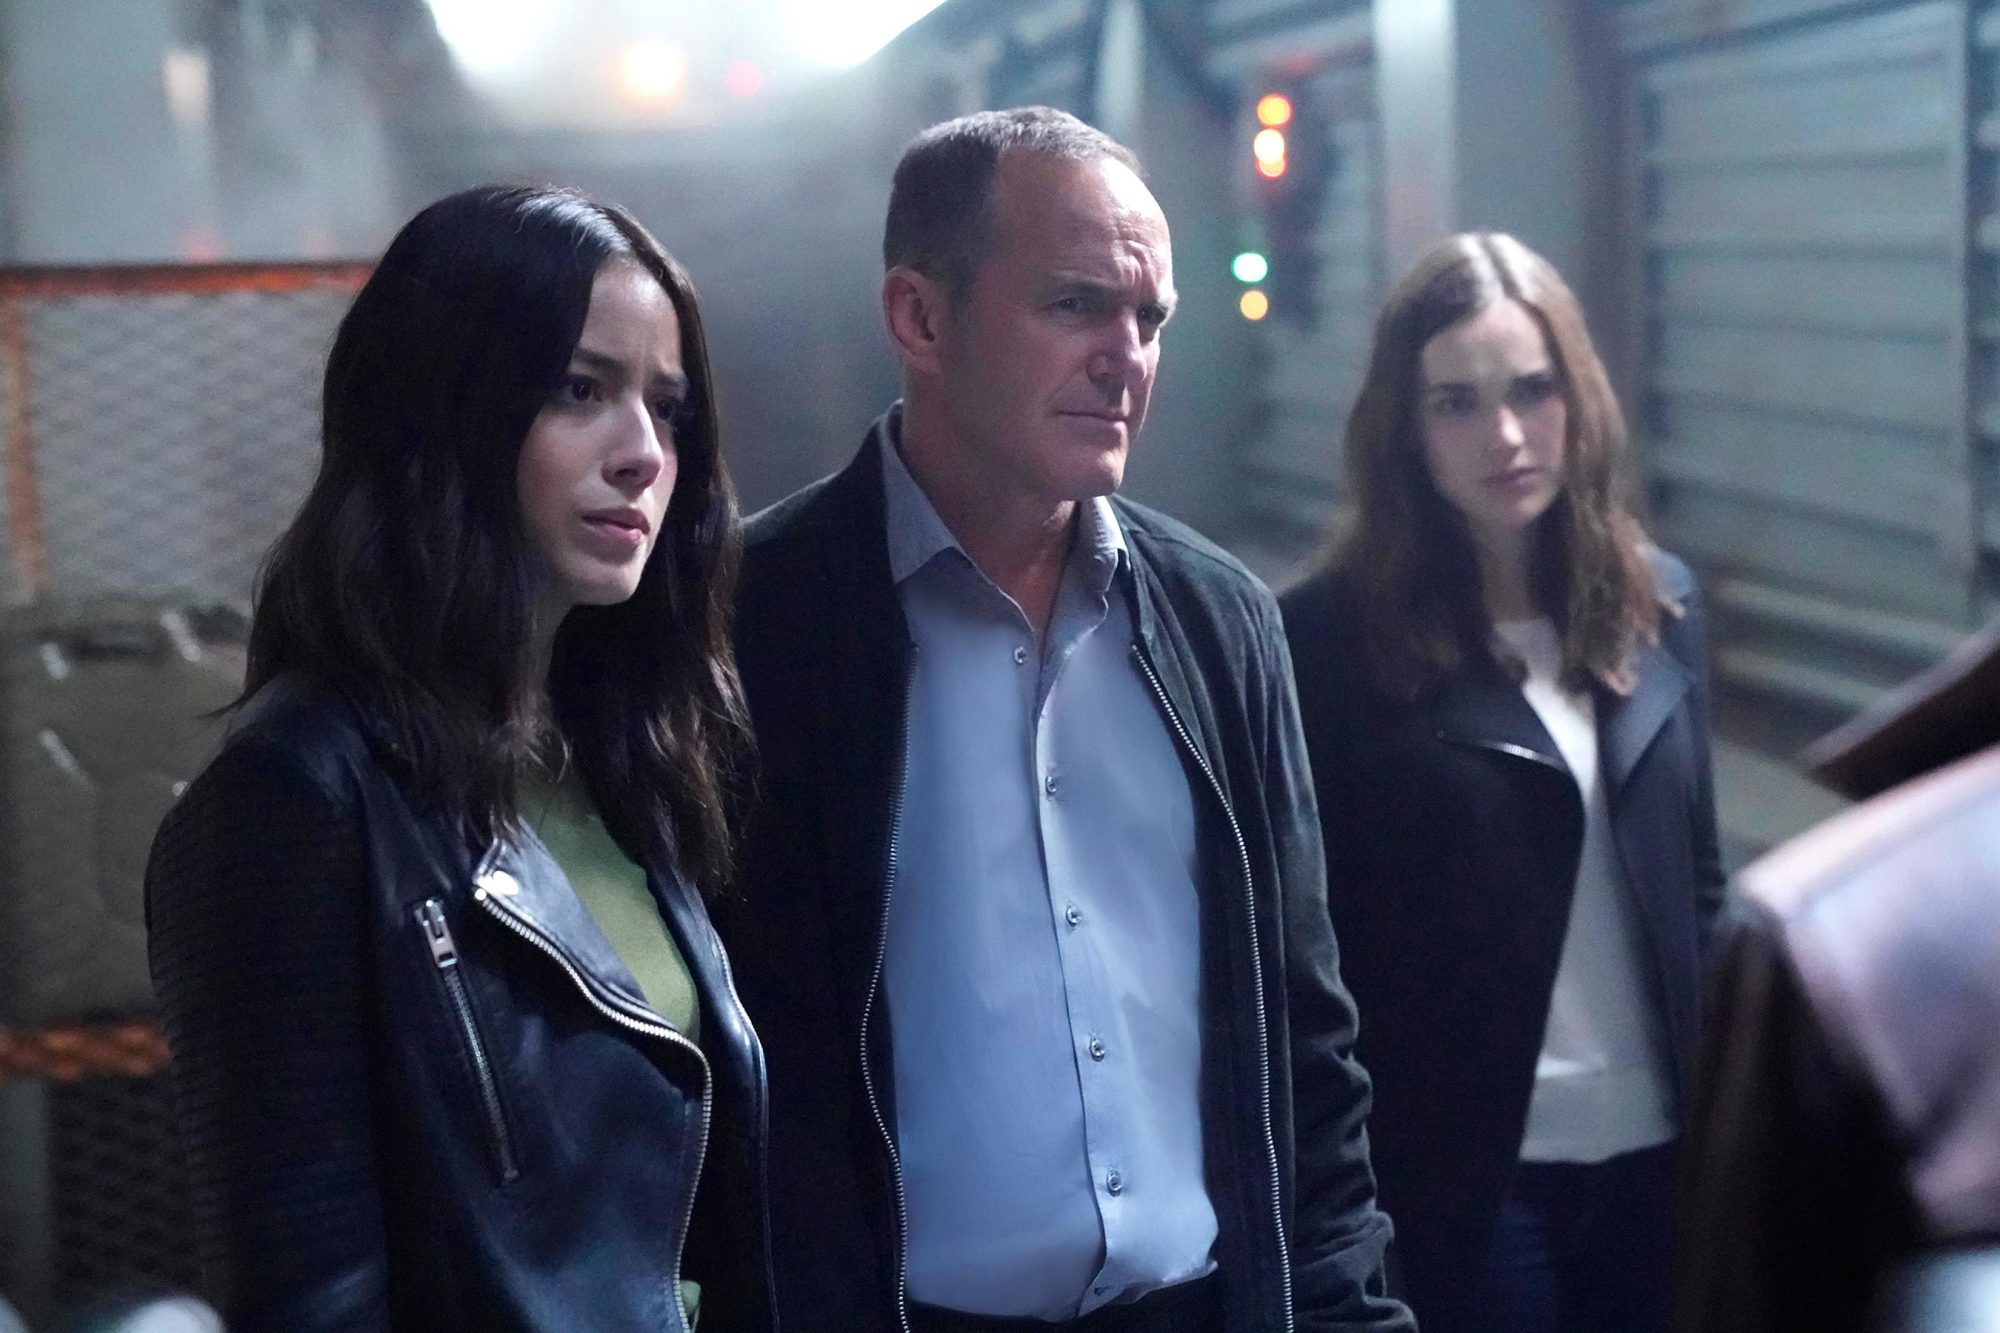 """MARVEL'S AGENTS OF S.H.I.E.L.D. - """"Orientation (Part One)"""" - Coulson and the team find themselves stranded on a mysterious ship in outer space, and that's just the beginning of the nightmare to come, when """"Marvel's Agents of S.H.I.E.L.D."""" returns for its highly anticipated fifth season with a special two-hour premiere, FRIDAY, DEC. 1 (8:00-10:01 p.m. EST), on The ABC Television Network. (ABC/Jennifer Clasen) CHLOE BENNET, CLARK GREGG, ELIZABETH HENSTRIDGE"""